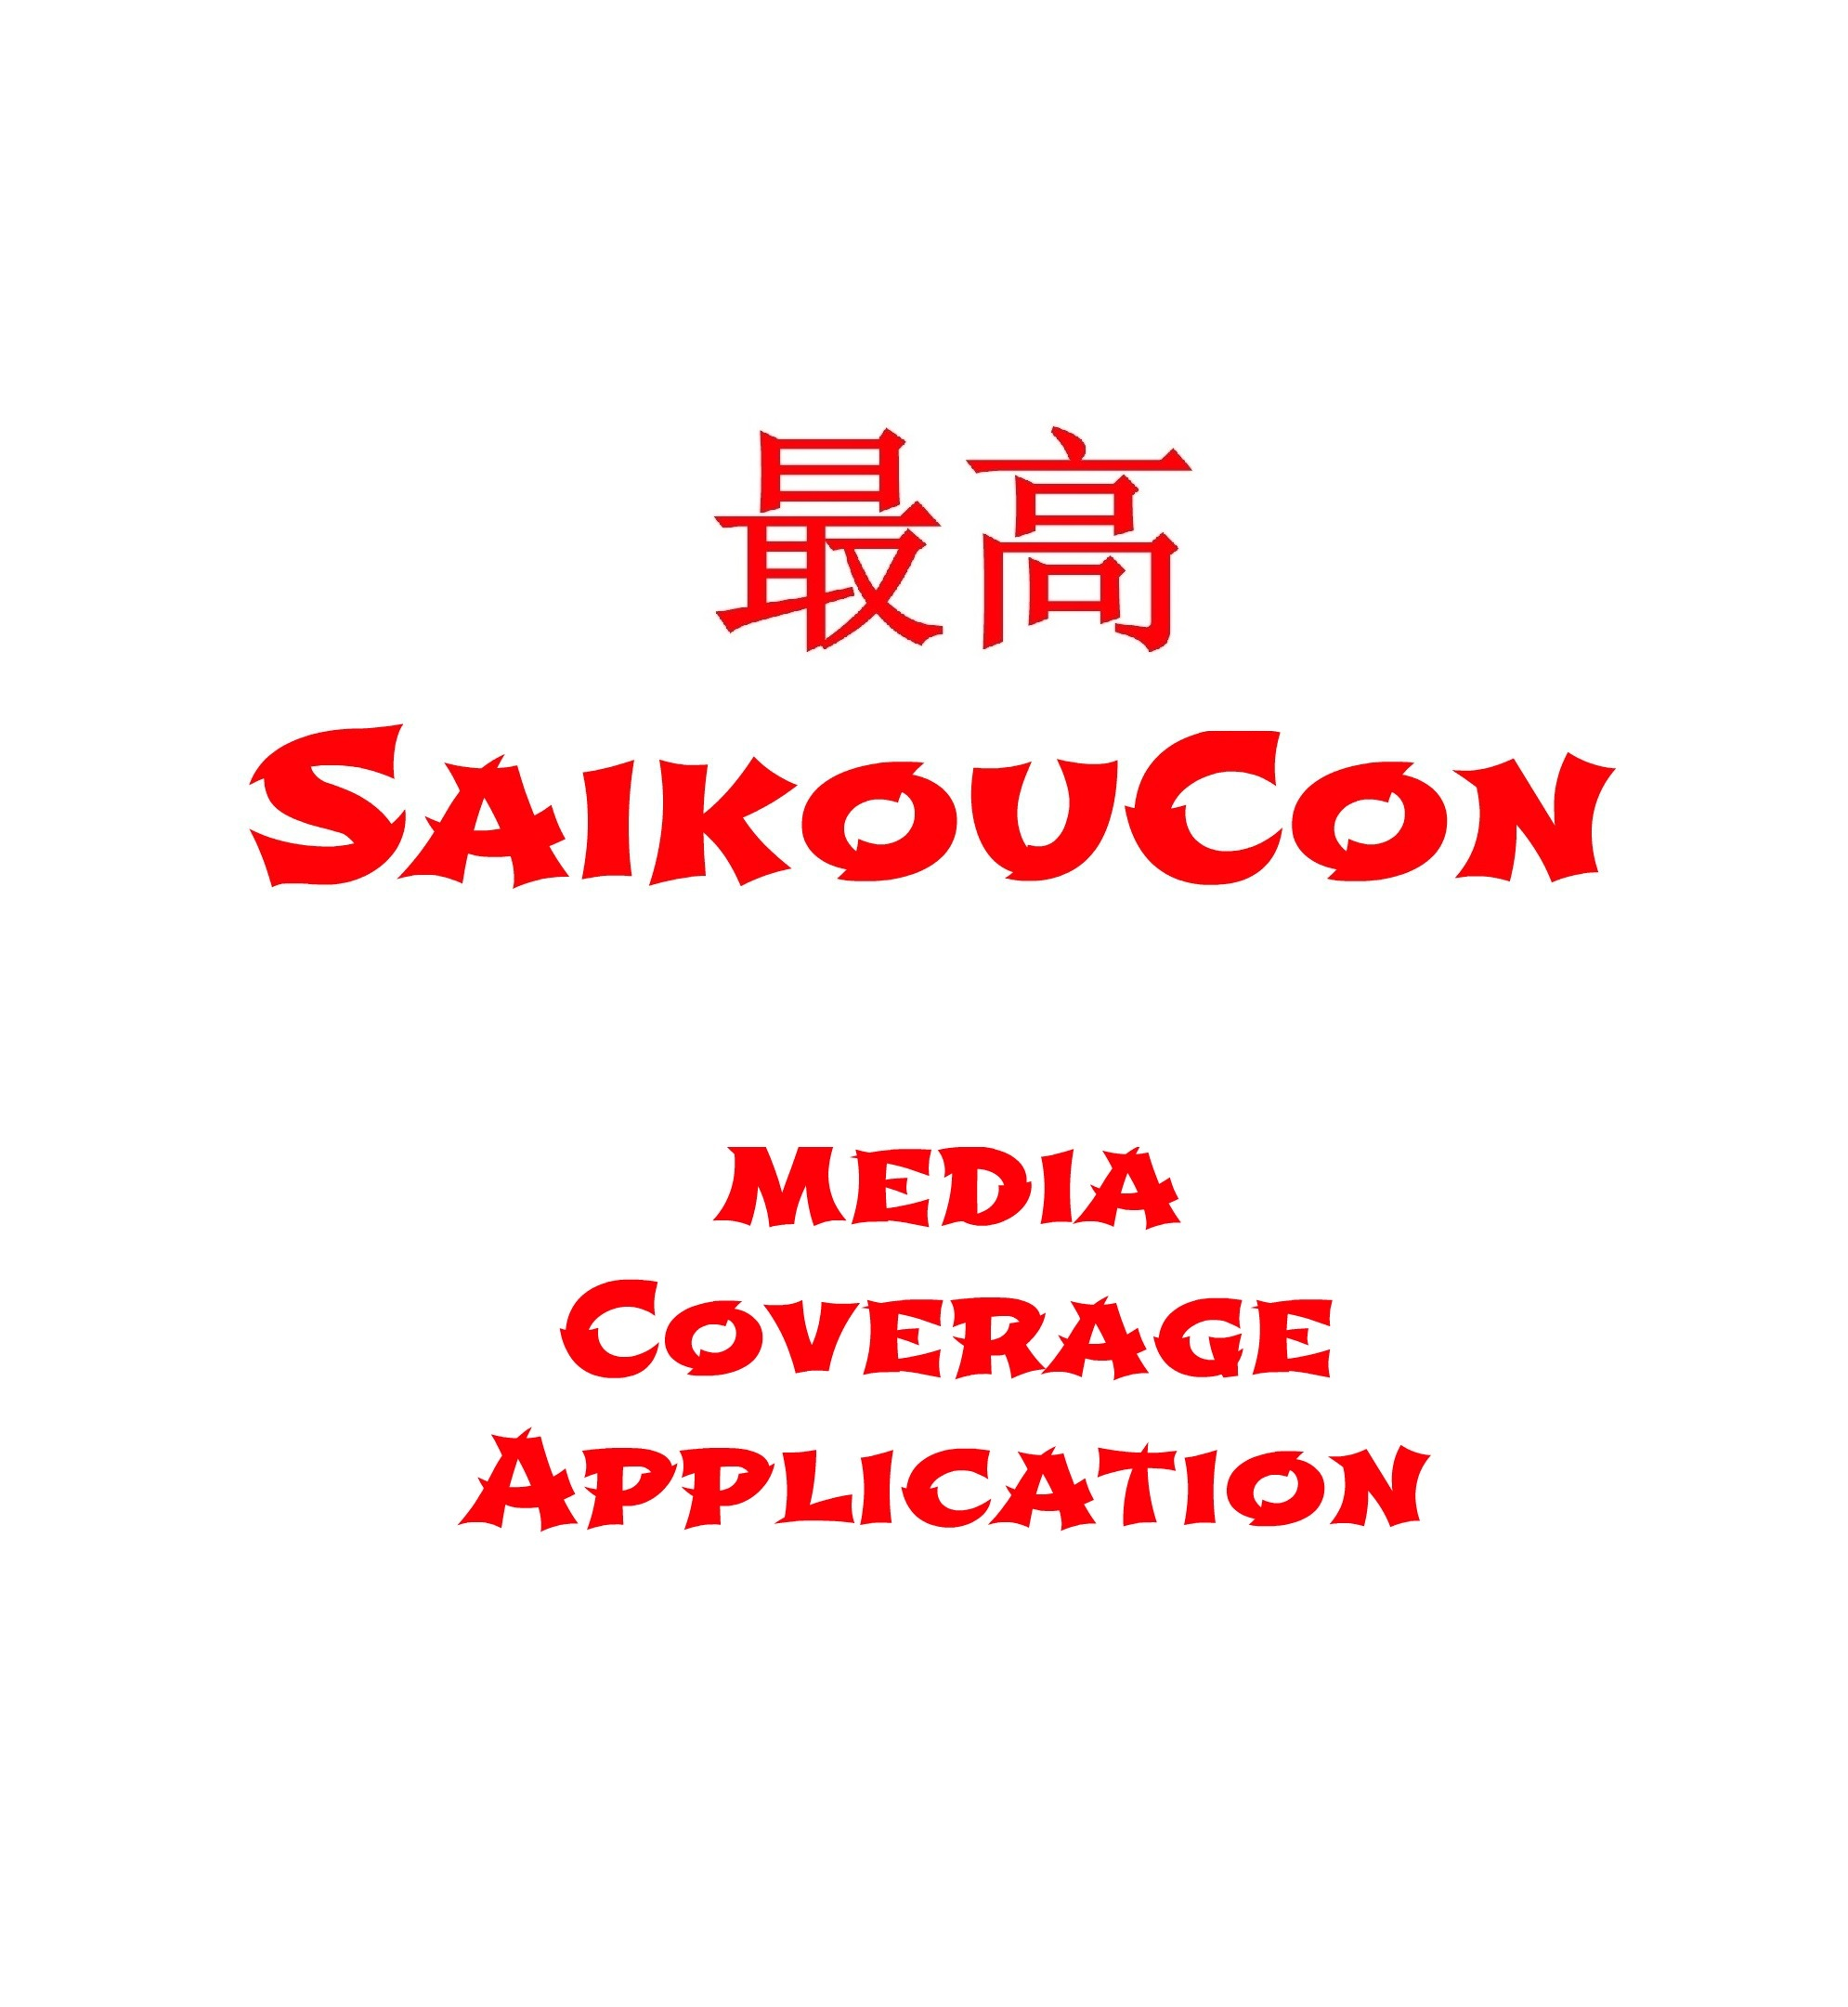 SaikouCon Media App